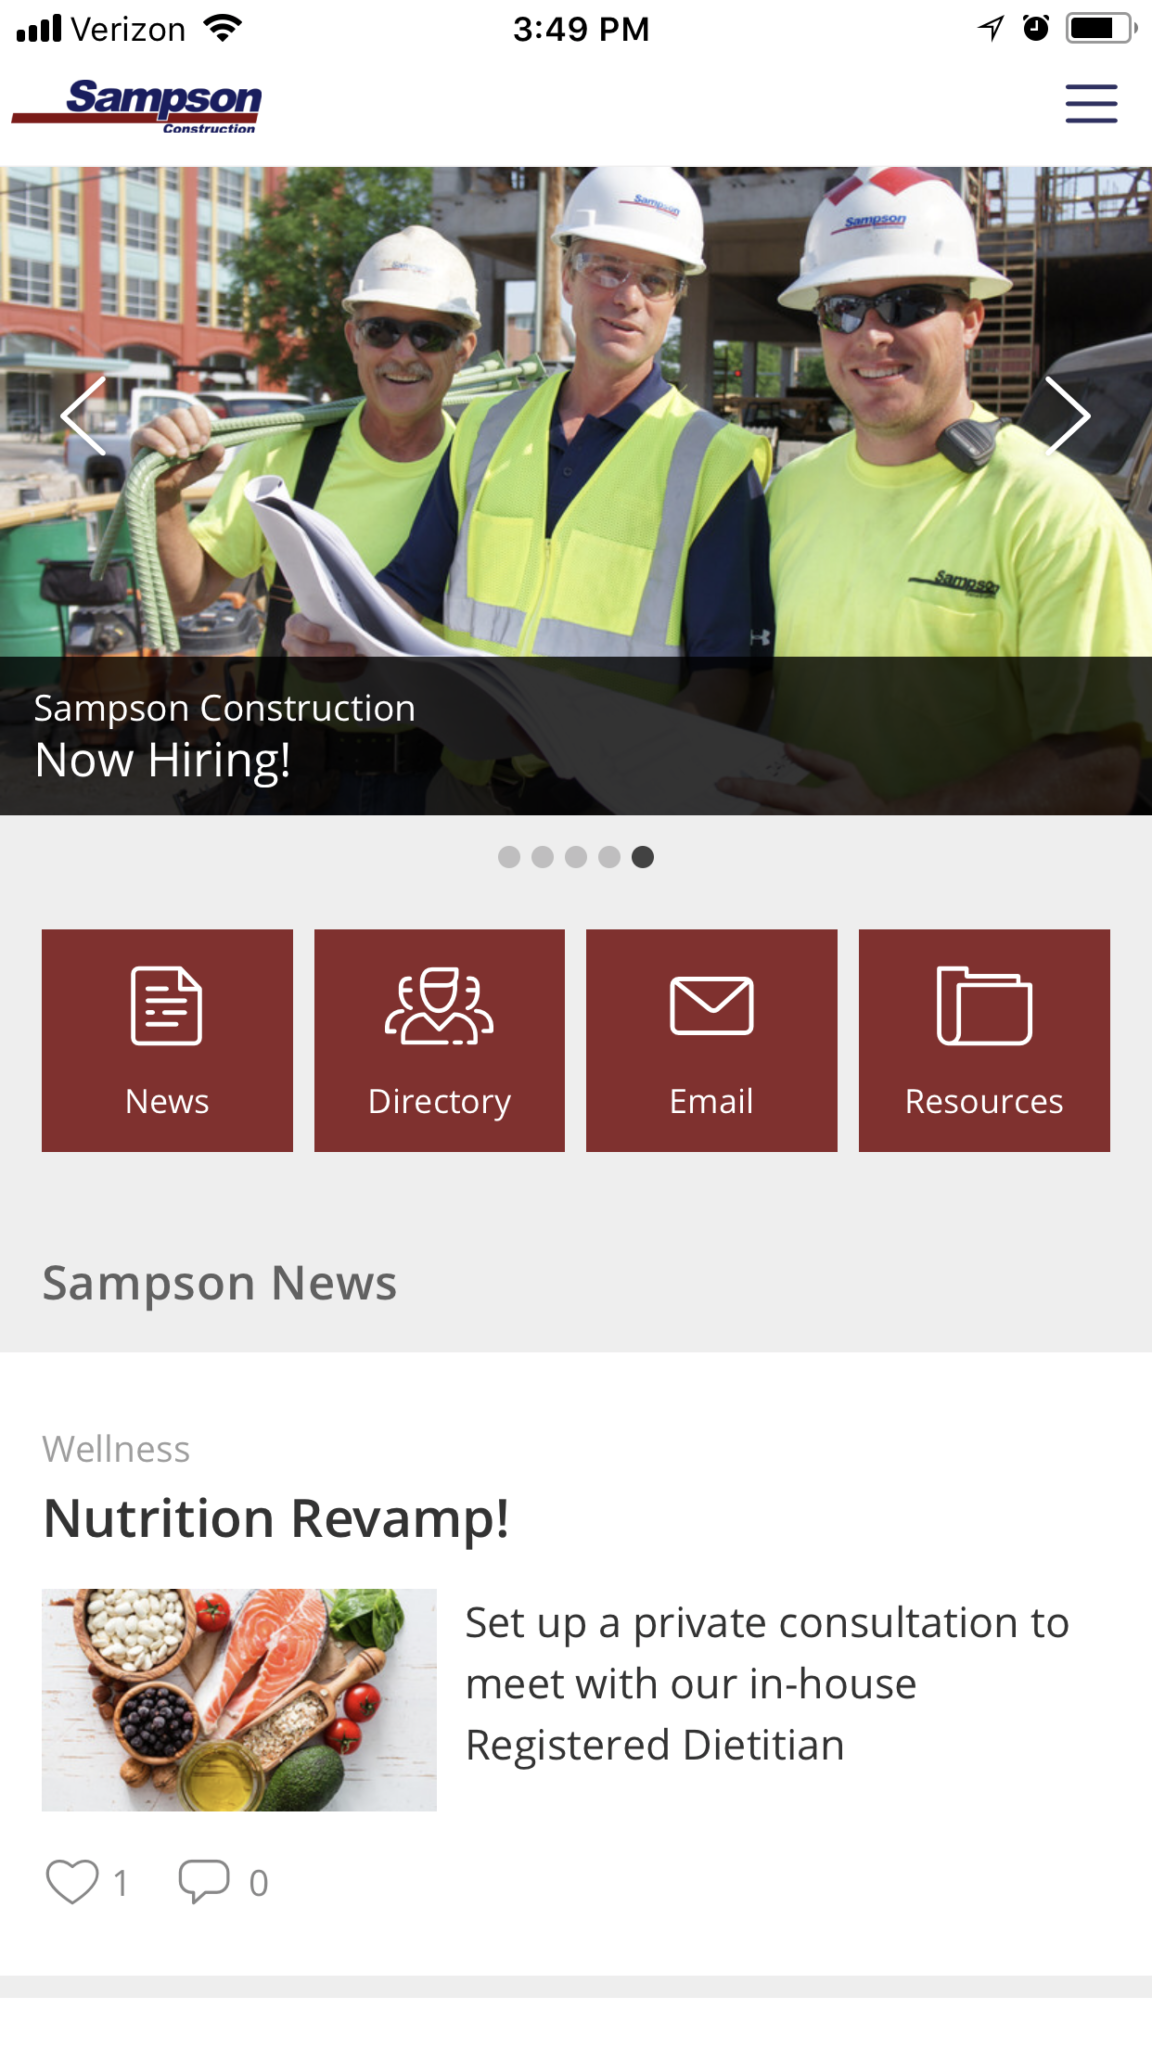 Samson Construction mobile app